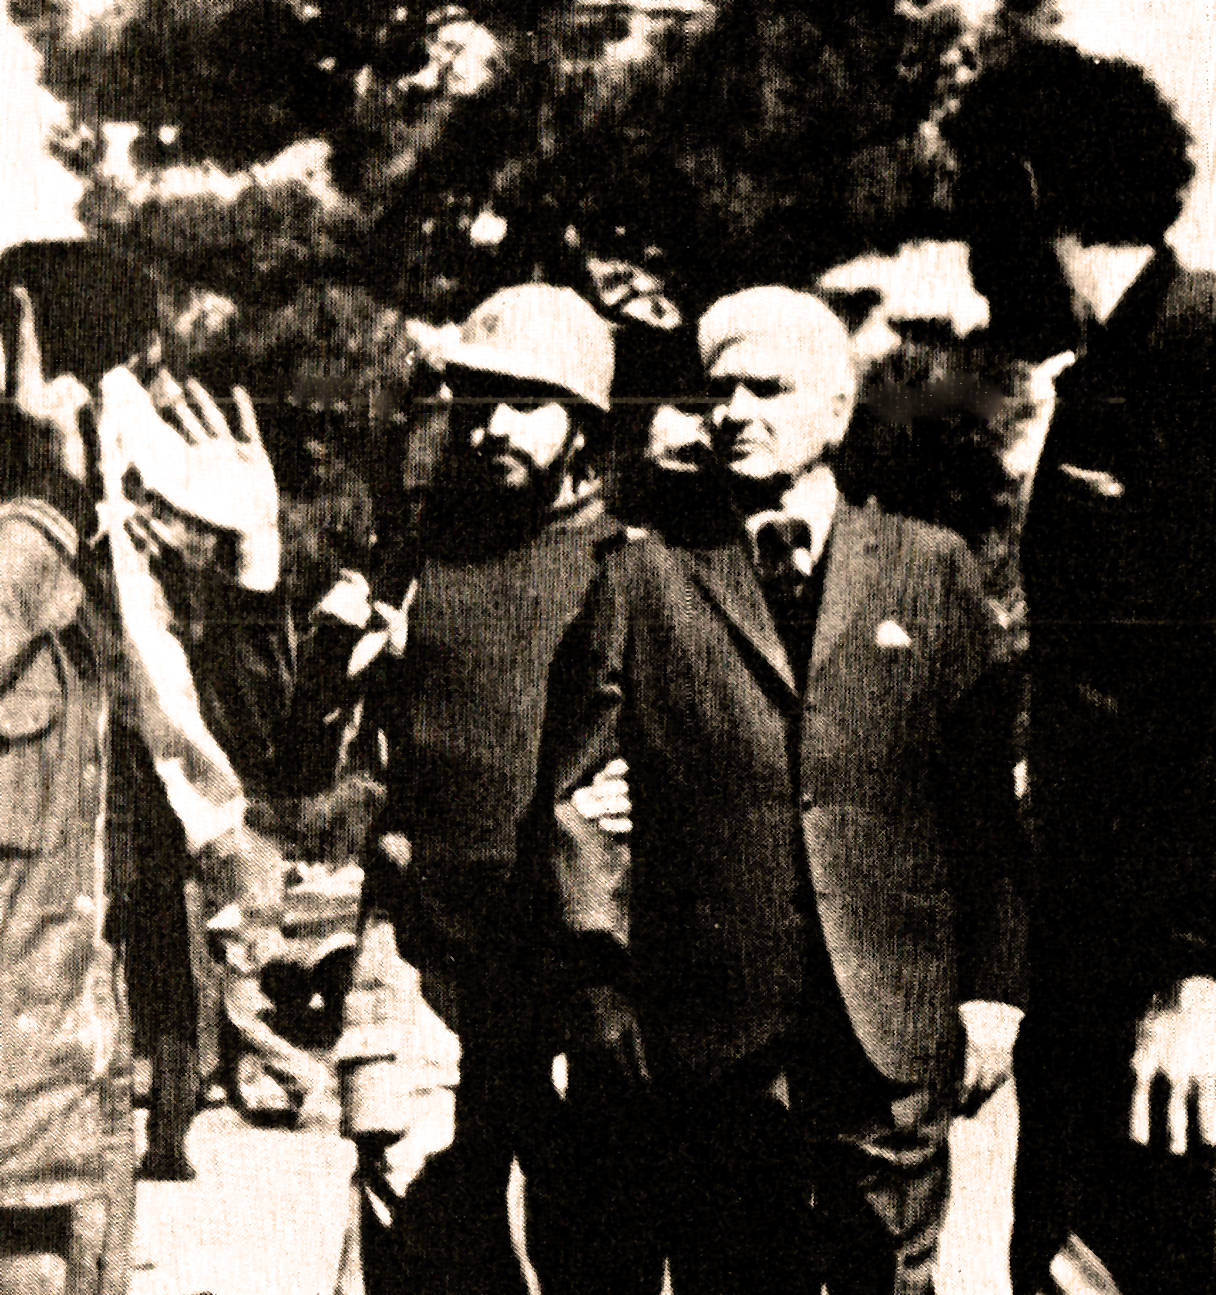 February 14, 1979 – American Embassy In Tehran: A Dry-Run And Rehearsal Of Sorts